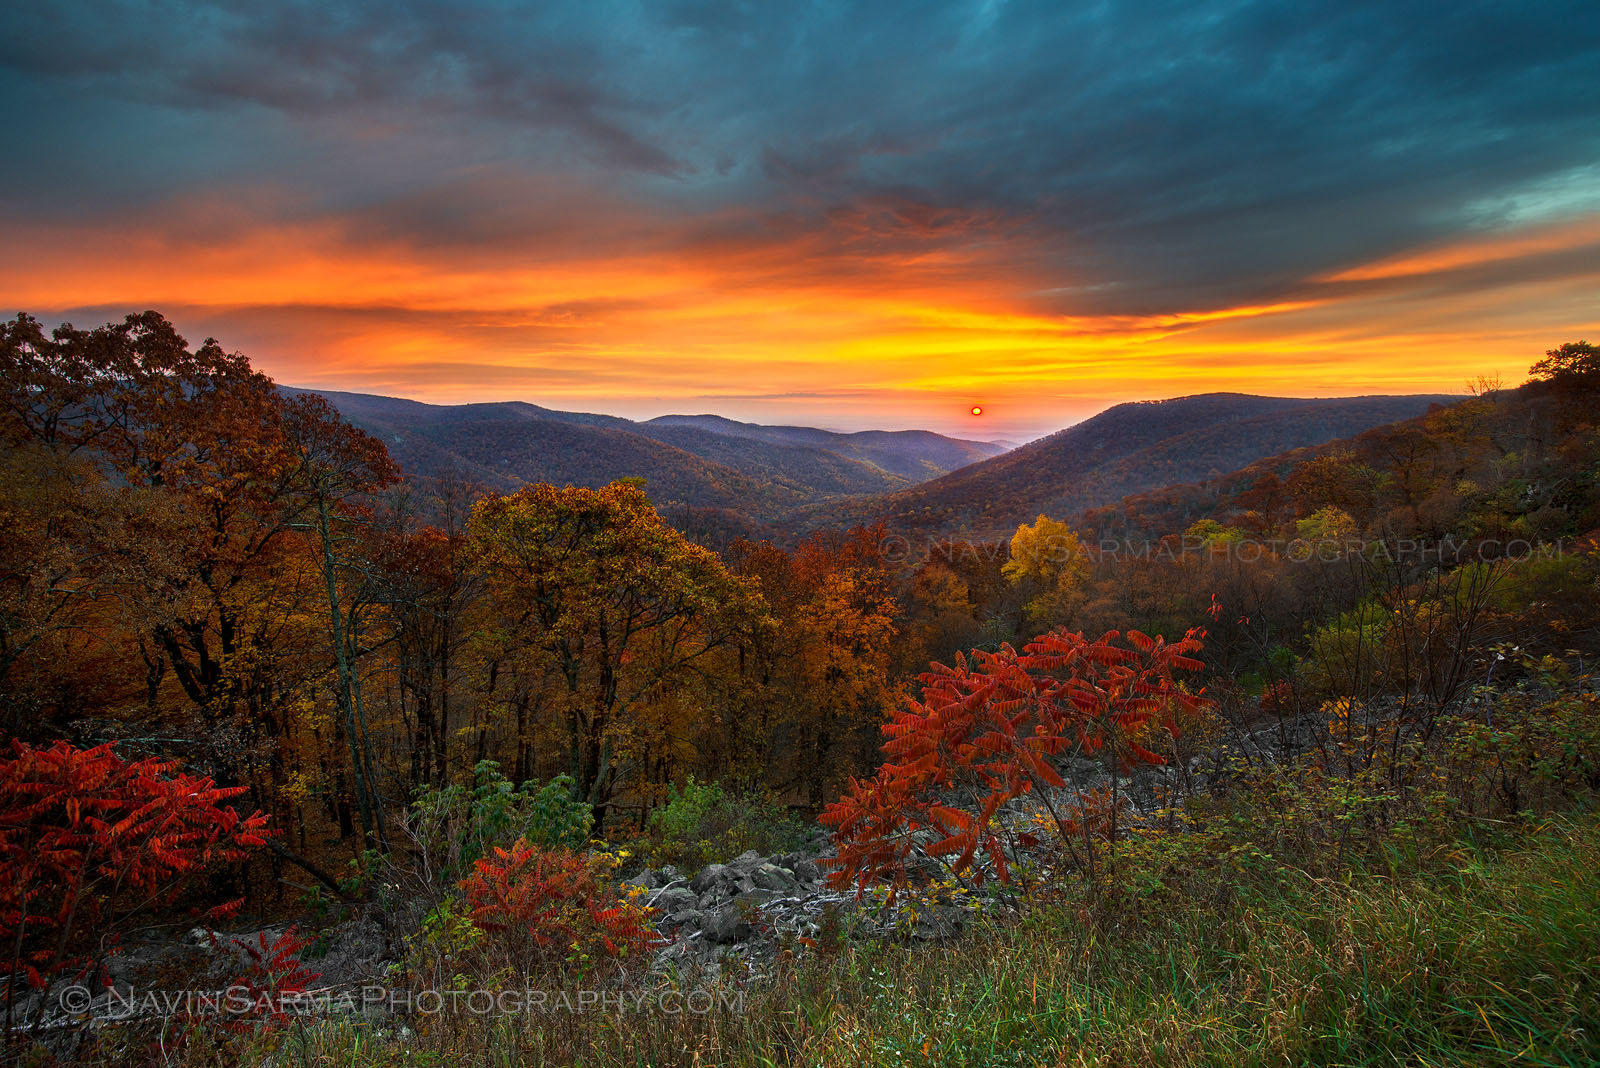 Sunrise in Shenandoah during peak fall conditions